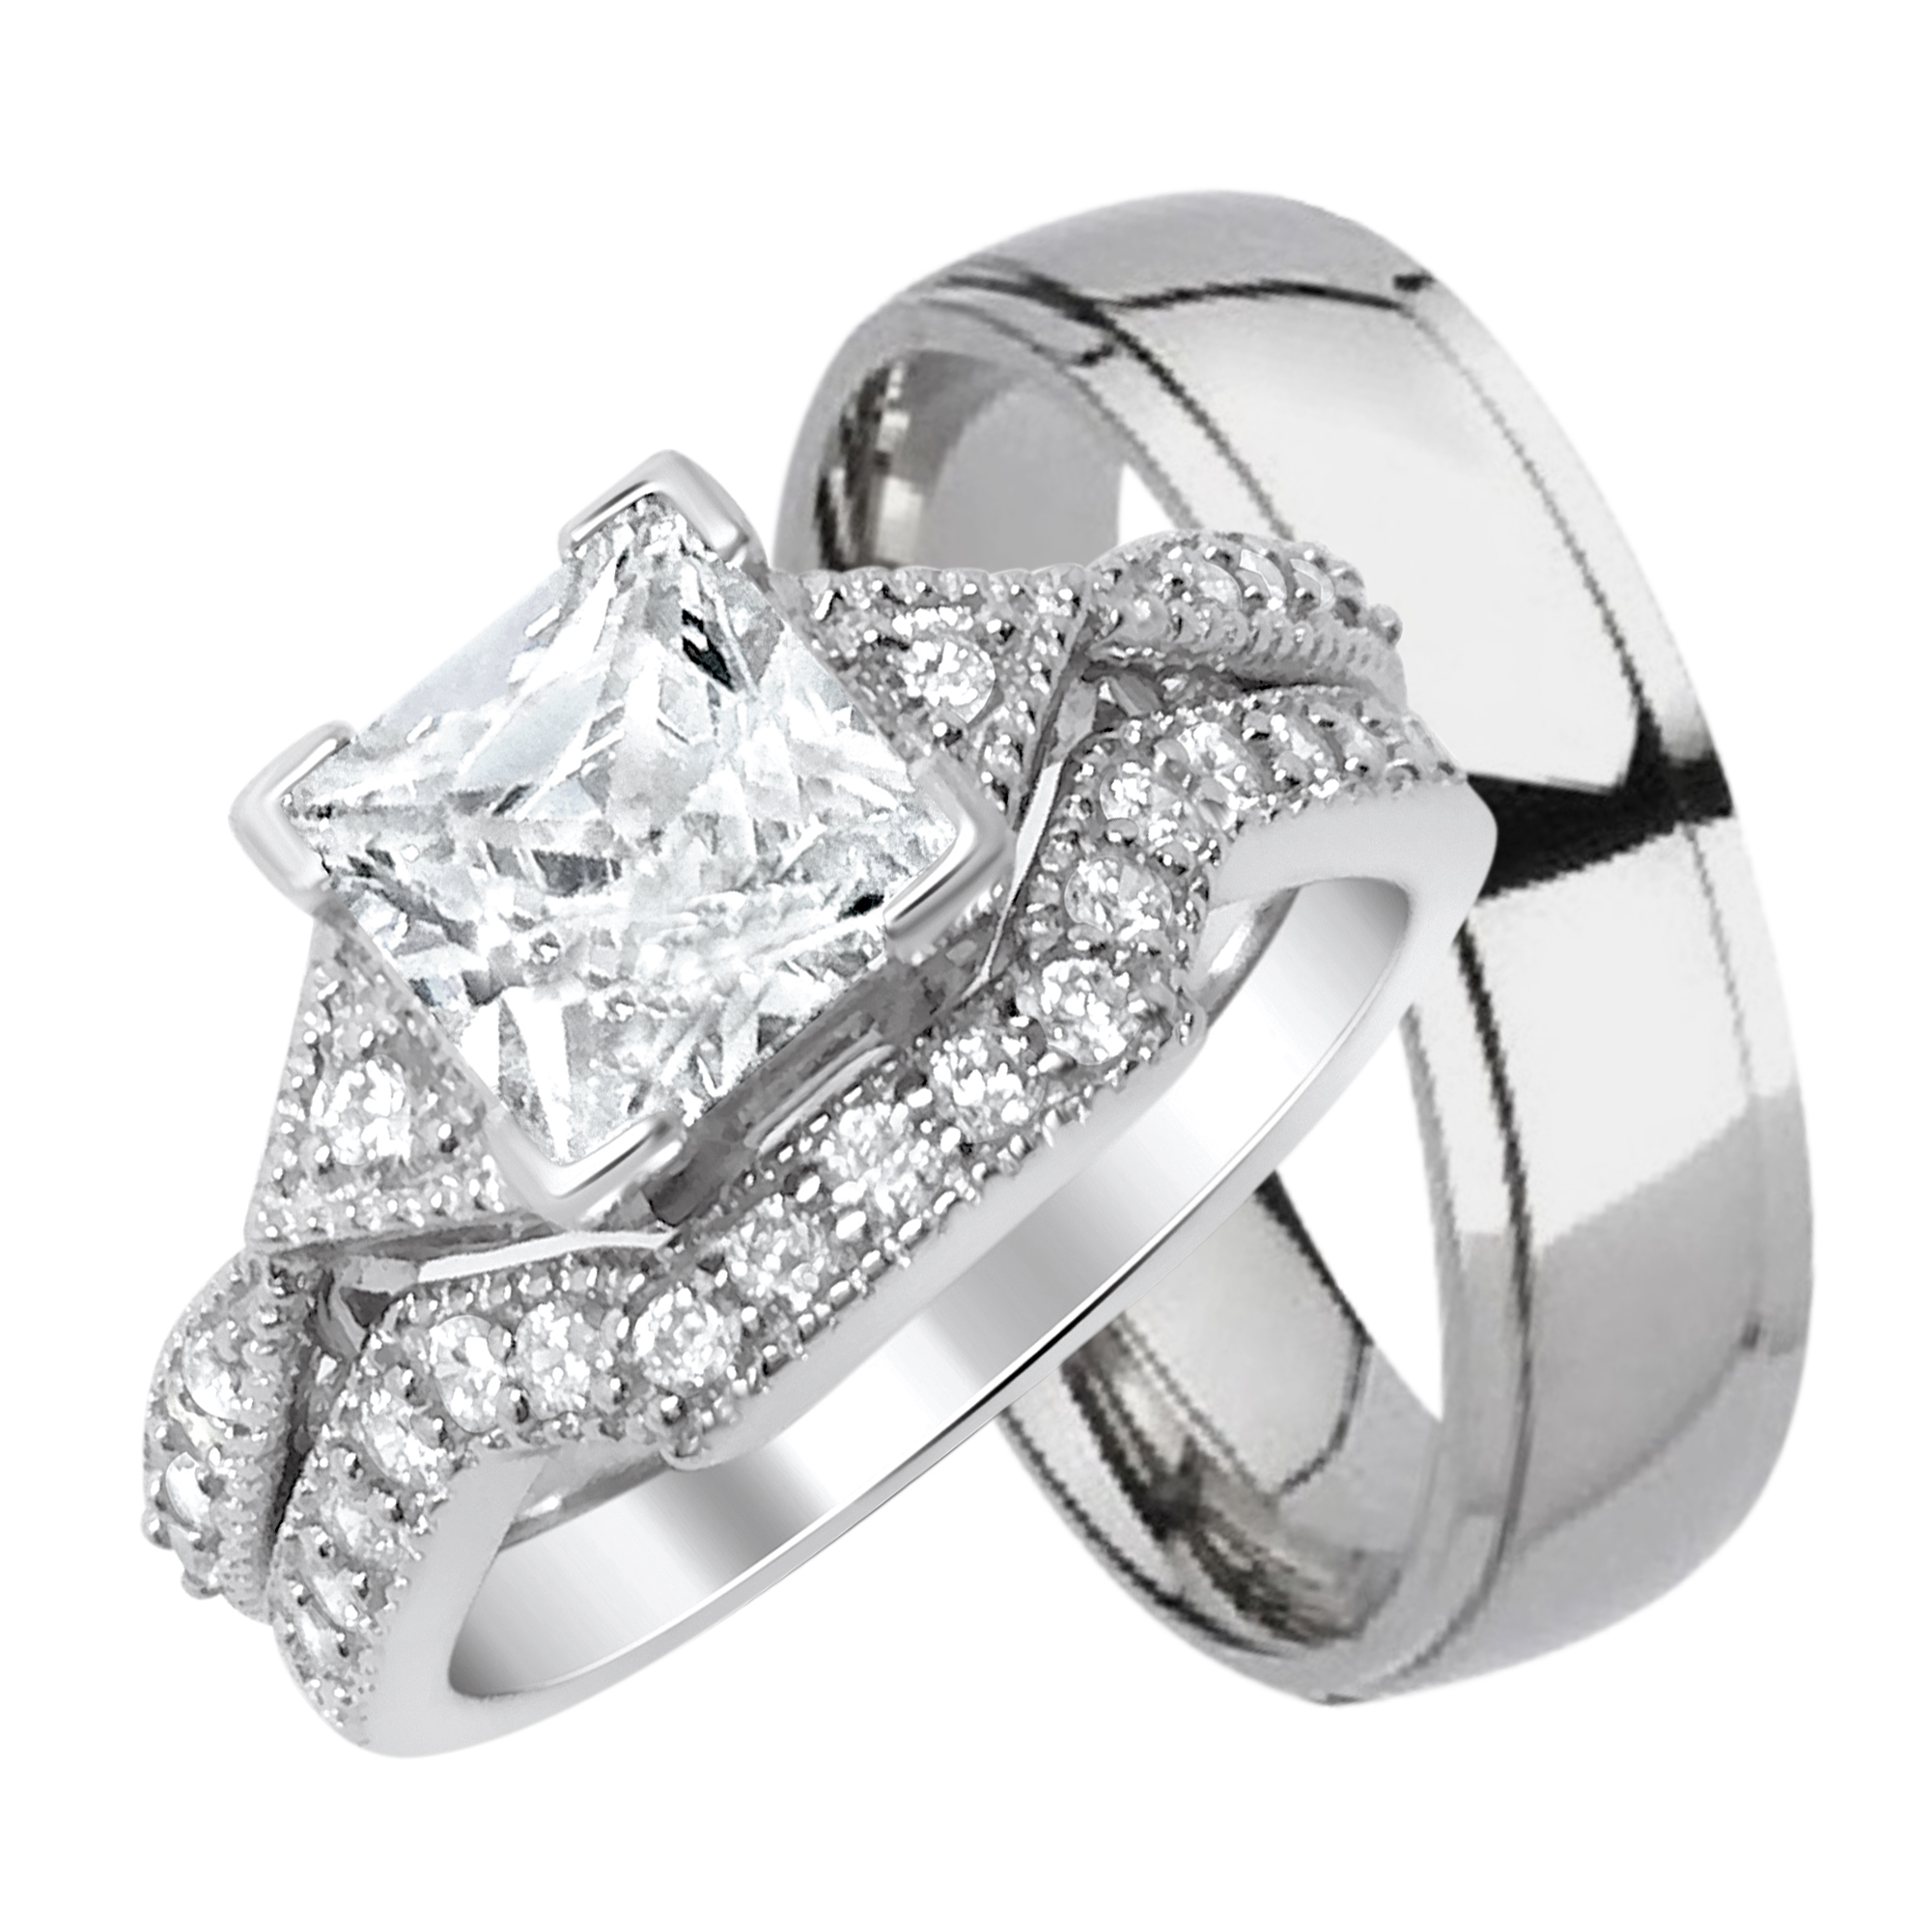 Wedding Rings Sets His And Hers Wedding Rings Sets His And Hers